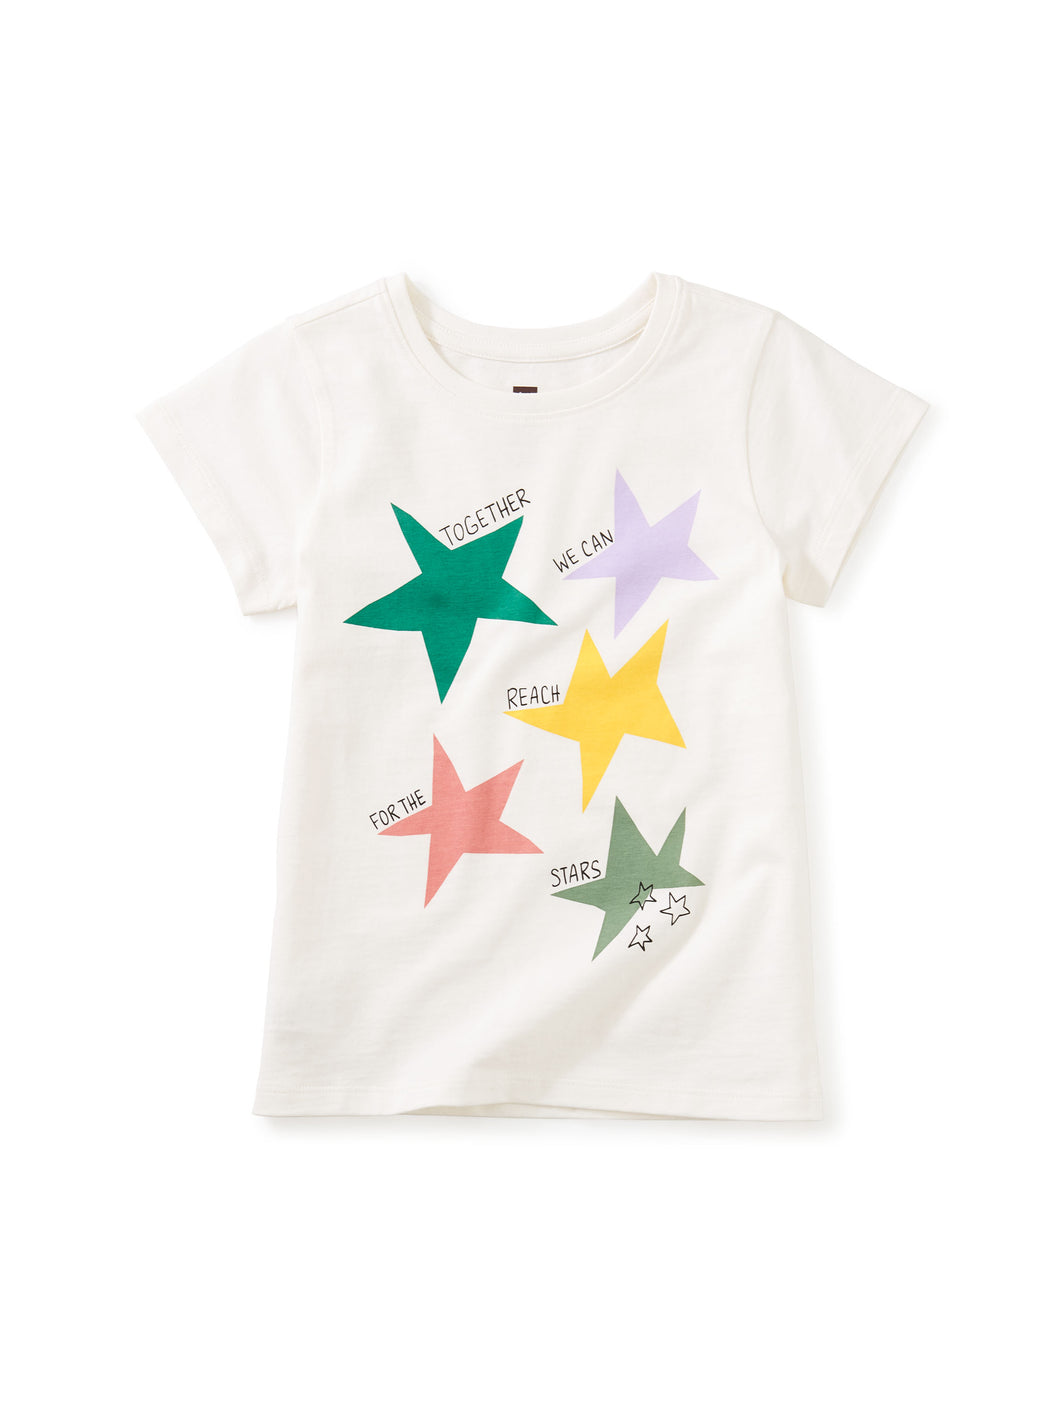 Tea Collection Reach for the Stars Tee - Chalk